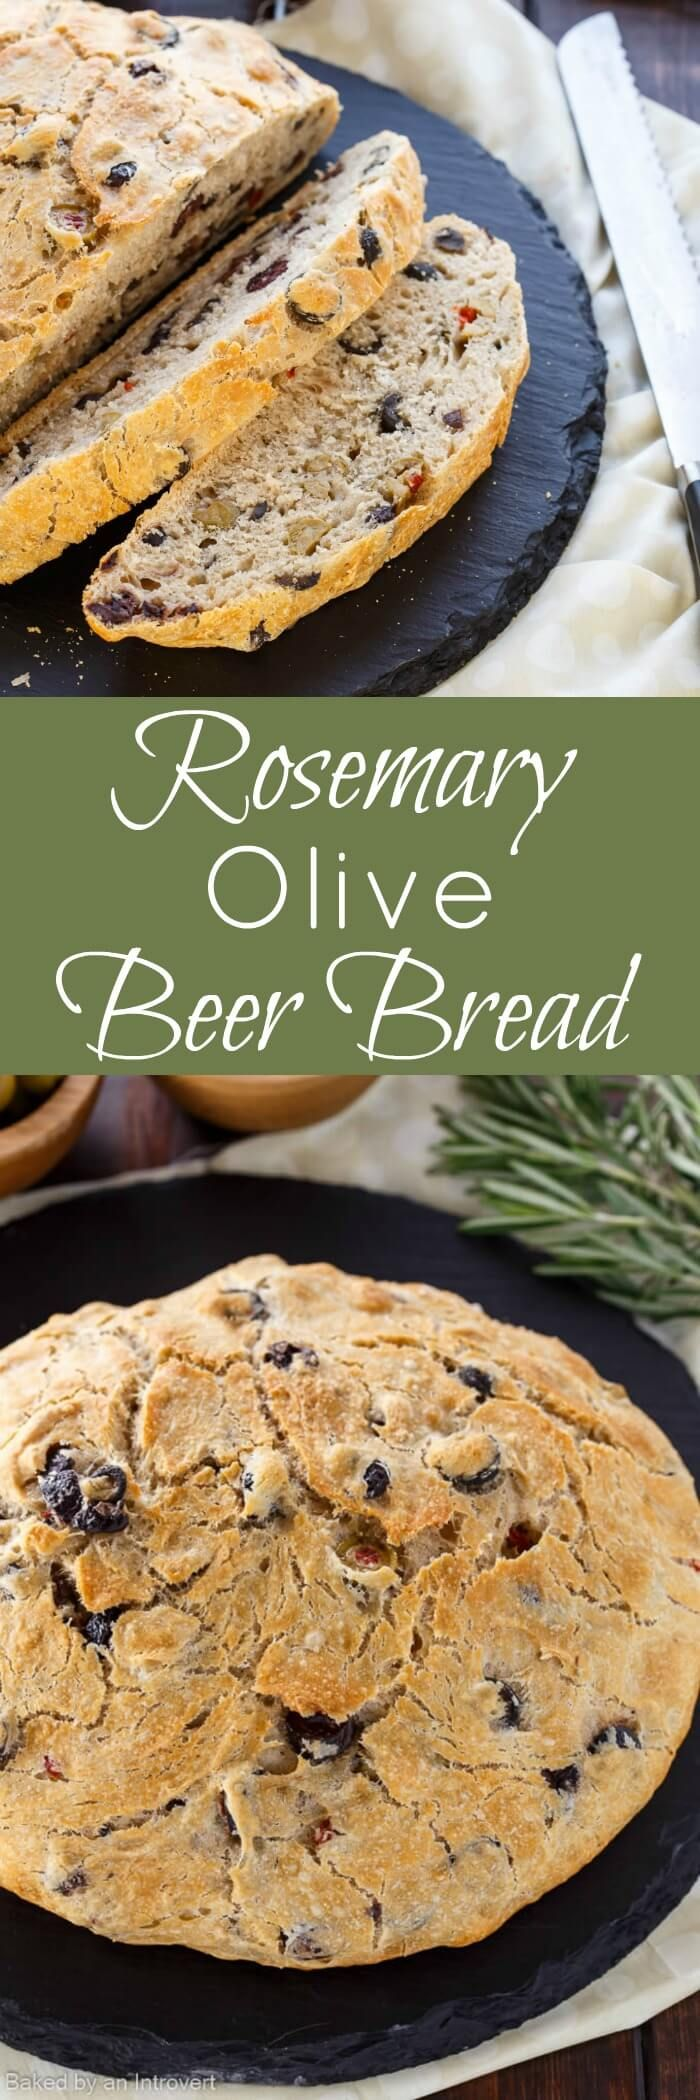 This Recipe For Rosemary Olive Beer Bread Is Delicious And Simply Knead Free The